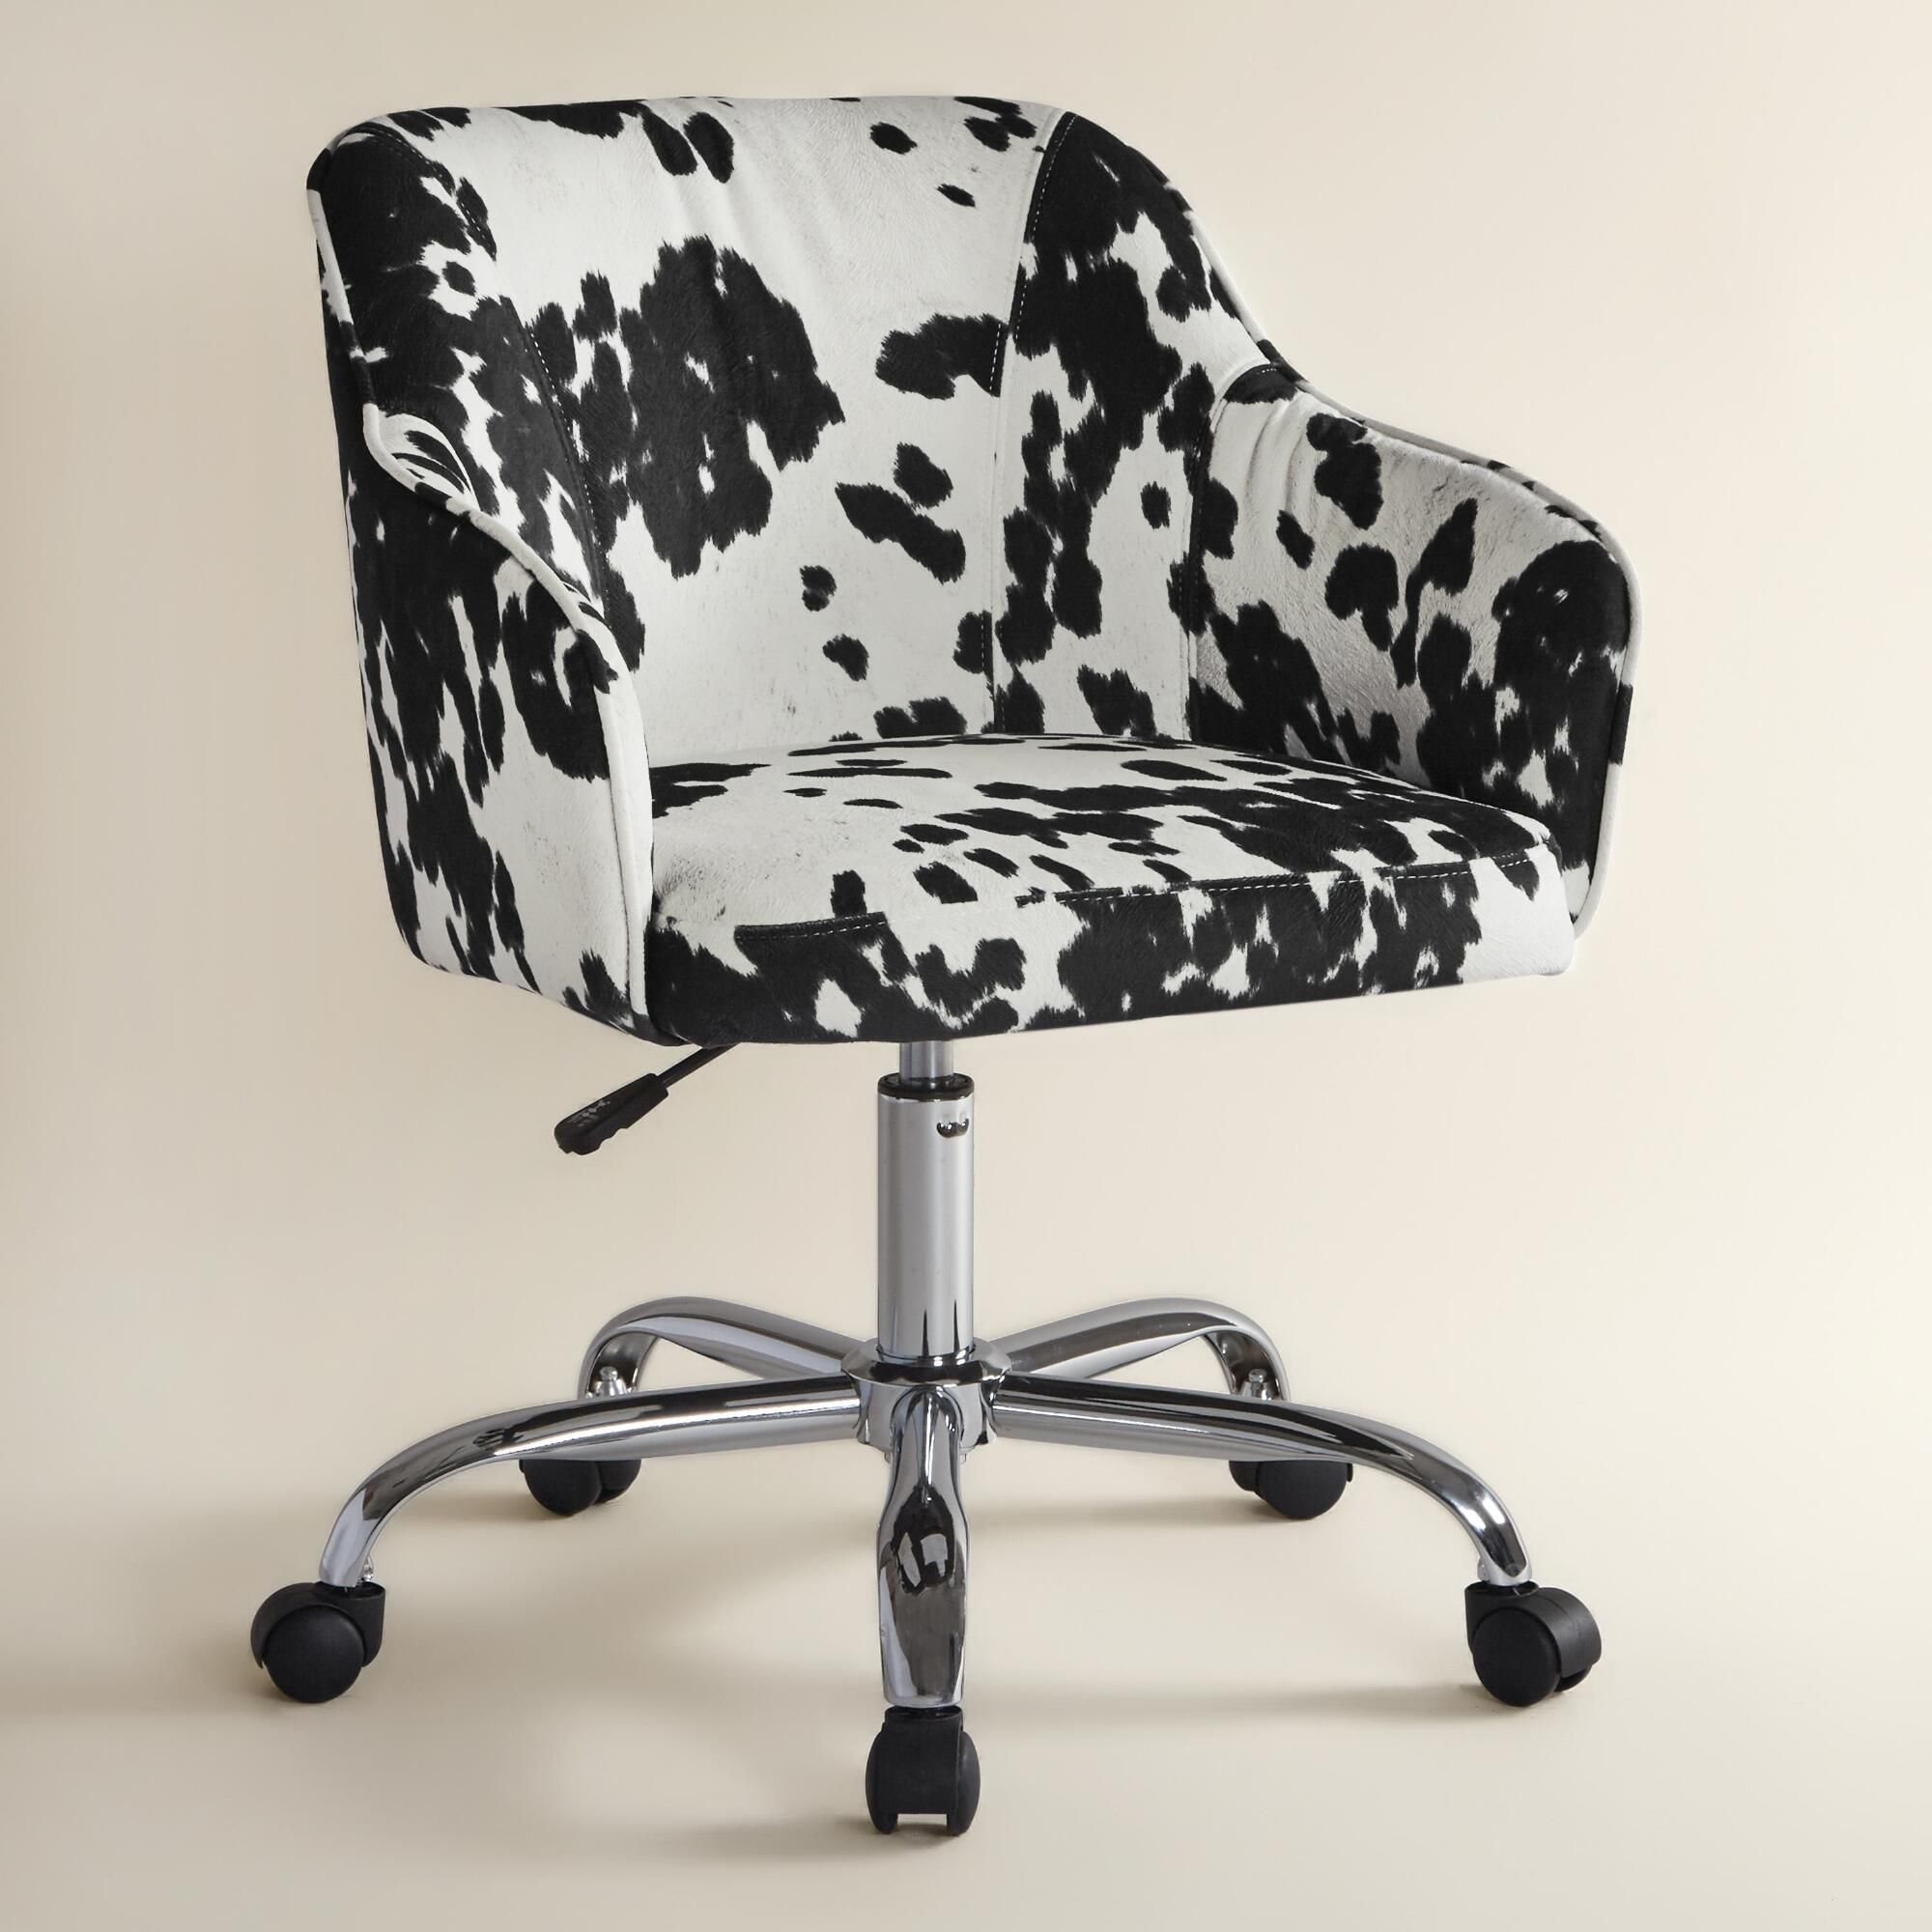 comfortable home office chair. A Modern Take On Office Seating, Our Comfortable Desk Chair Features Thick Padded Seat Home